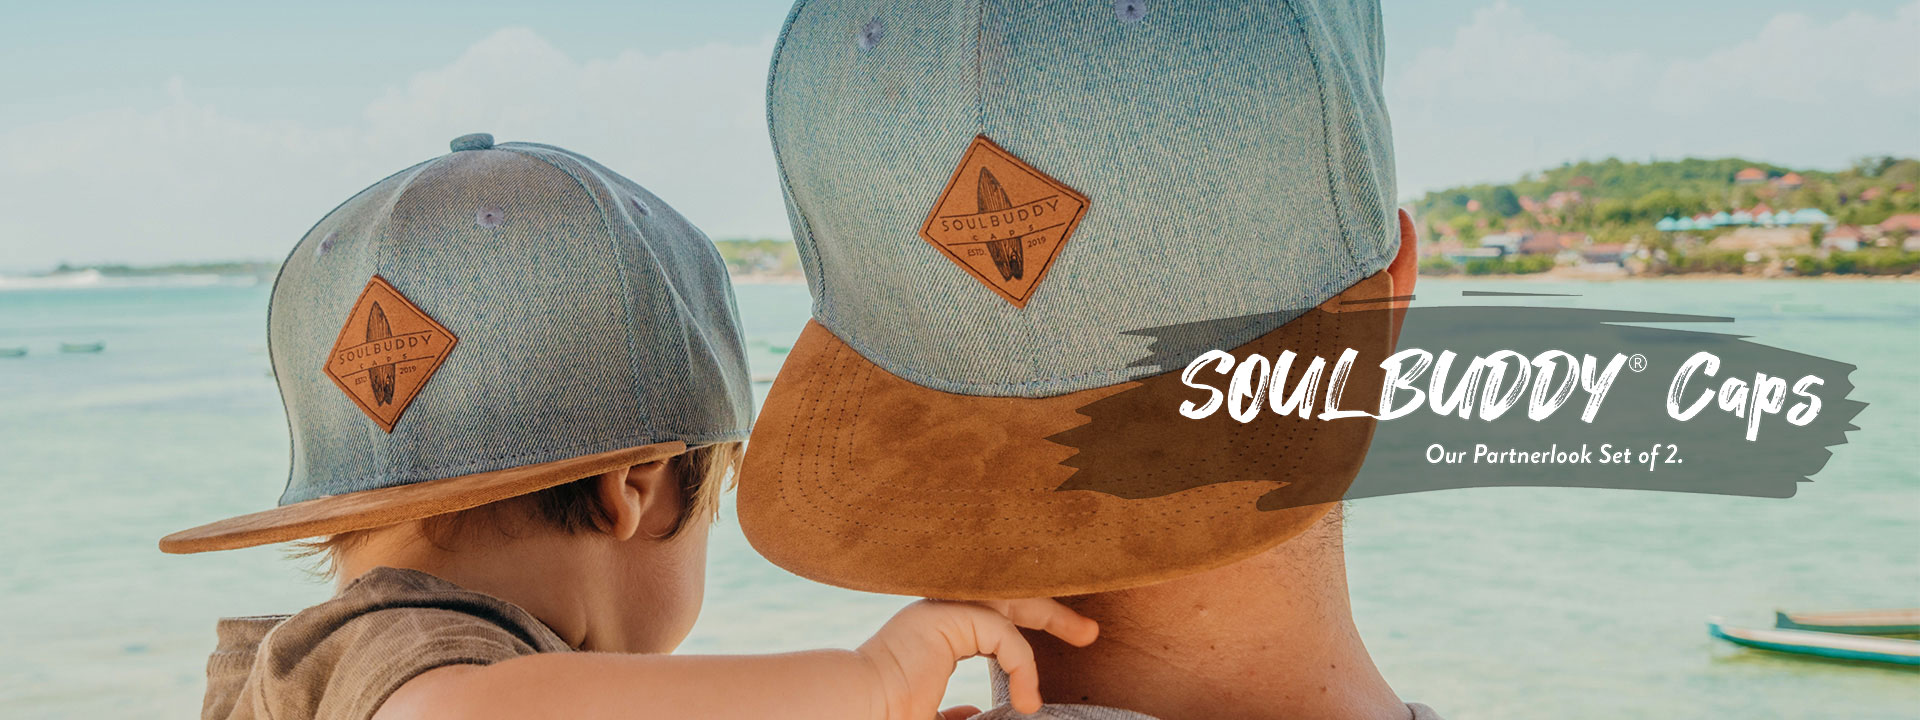 SOULBUDDY Caps, mommy and me, daddy and me, snapback hats, baby hats, toddler hats, push present, baby shower, partner look